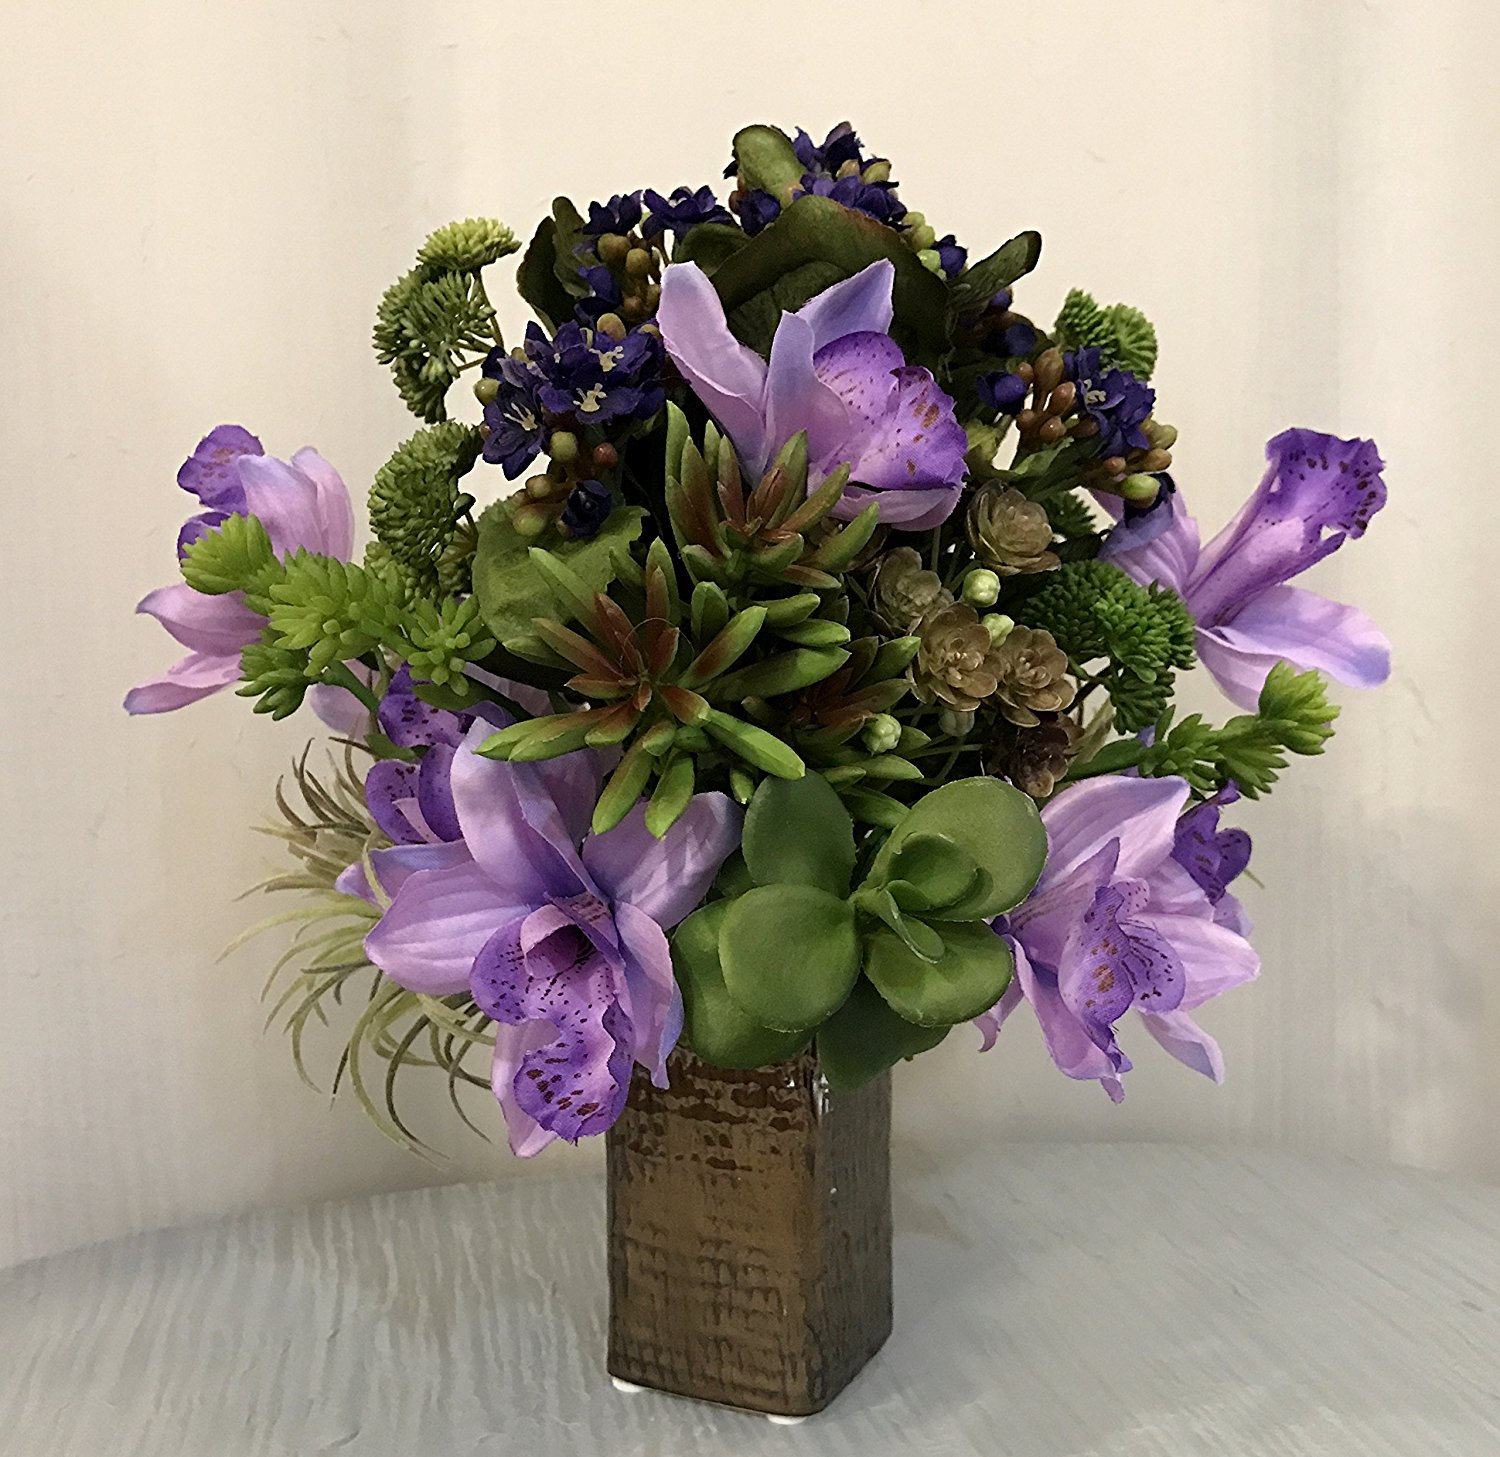 Buy Artificial Kalanchoe Orchid Plant And Succulent Arrangement In Weave Textured Bronze Ceramic Vase Purple And Green Office Home Decor Accent For Gift Handcrafted At The Floral Mart In Cheap Price On